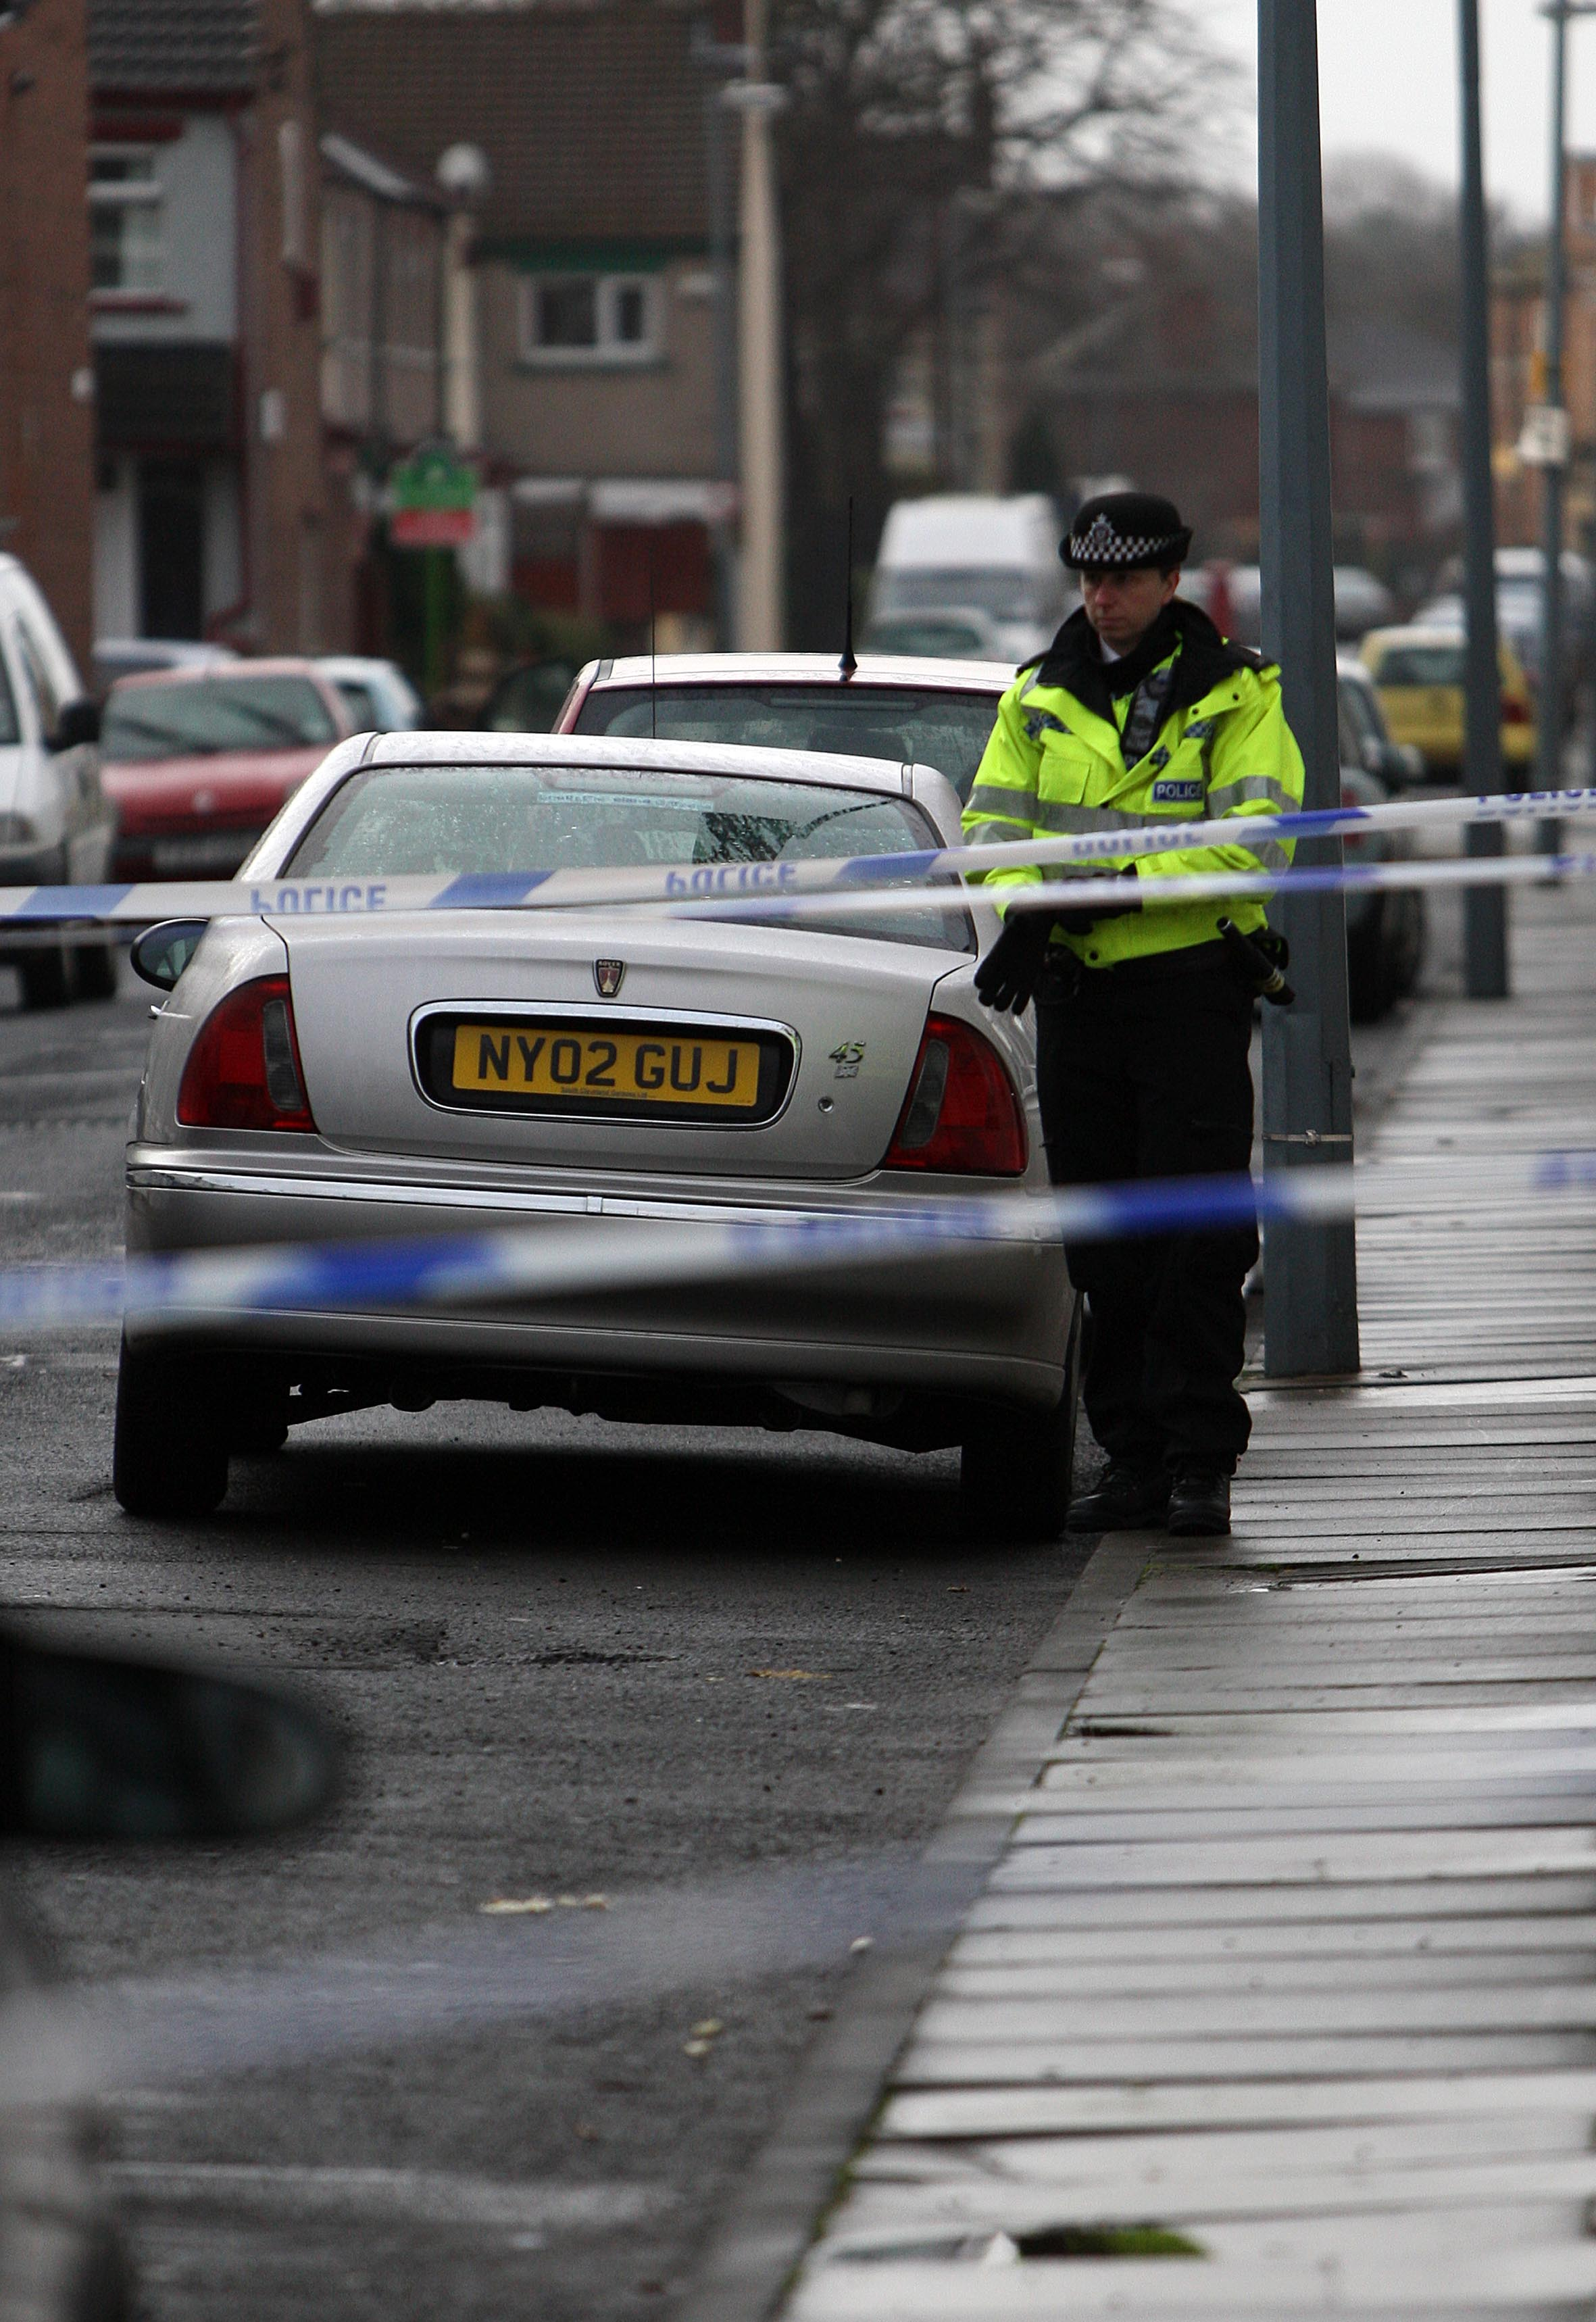 Police seal off Carlow Street in Middlesbrough as part of murder investigation